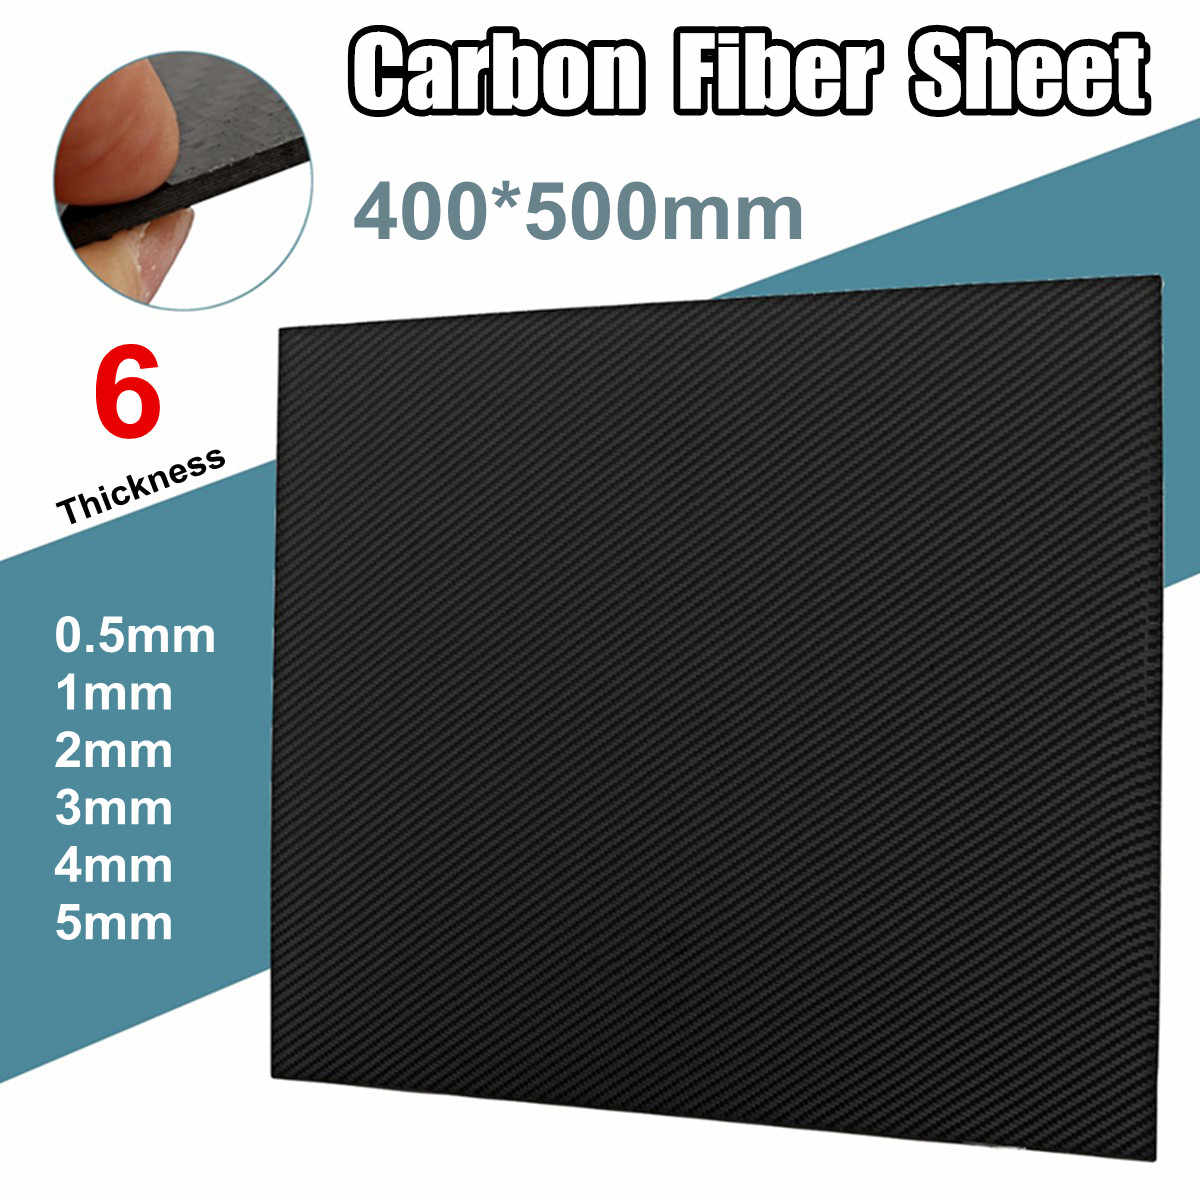 0.5mm 1mm 2mm 3mm 4mm 5mm Thickness Real Carbon Fiber Plate Panel Sheets High Composite Hardness Material For RC 400x500mm